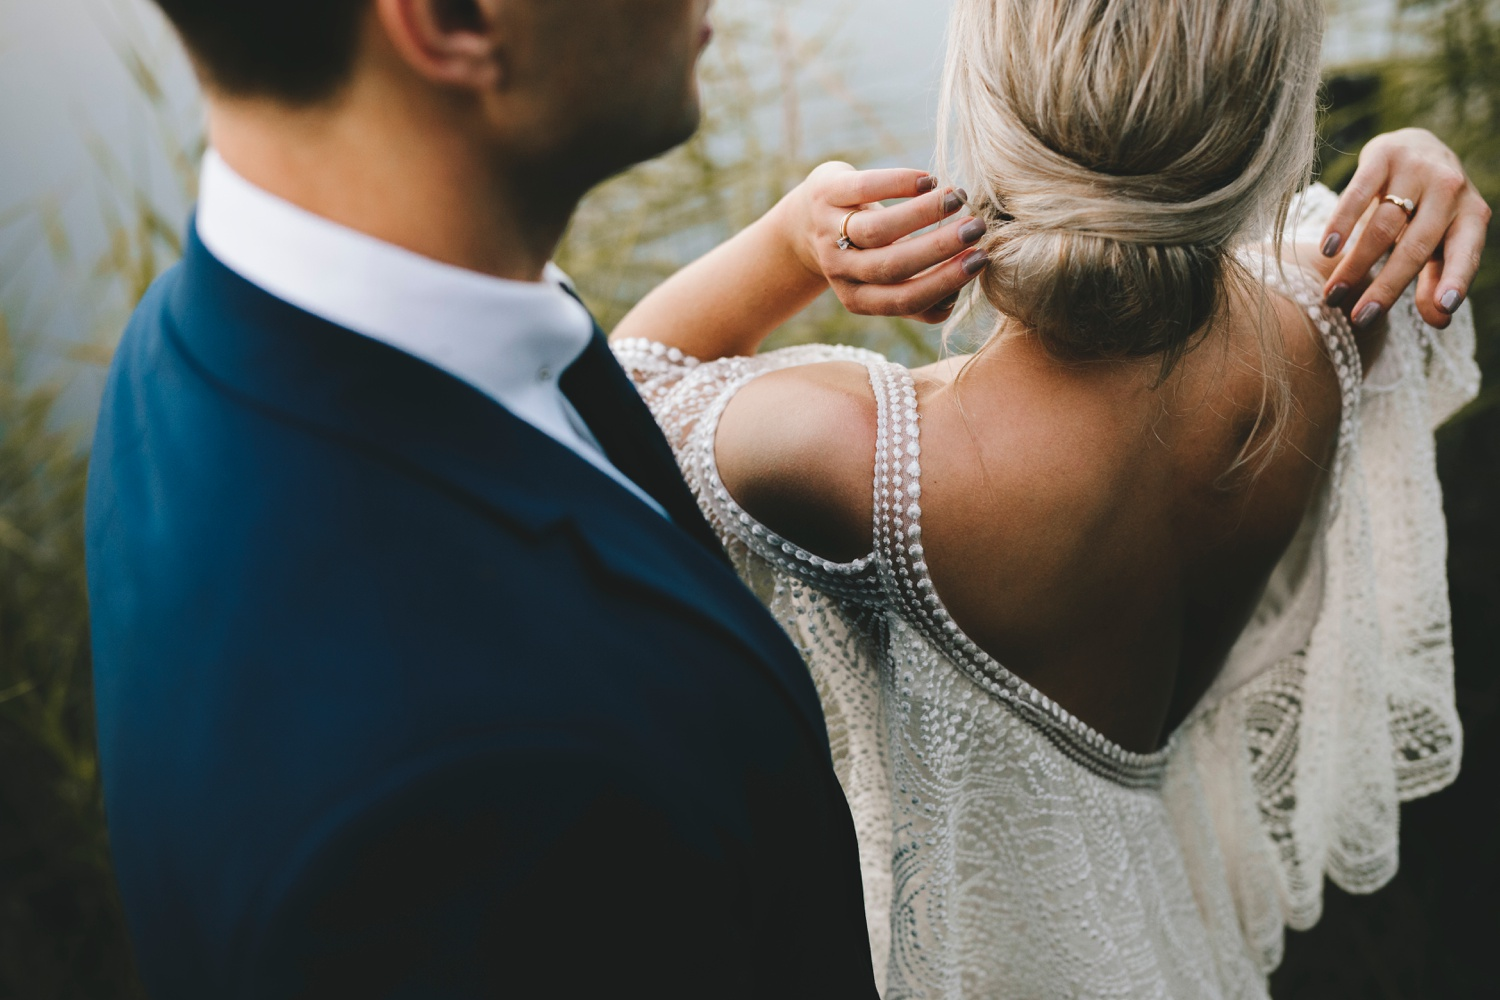 charlie_ray_photography_runaway_romance_elopement_emily_moon_plett_simple_boho_wedding_south_africa_bohemium_0100.jpg